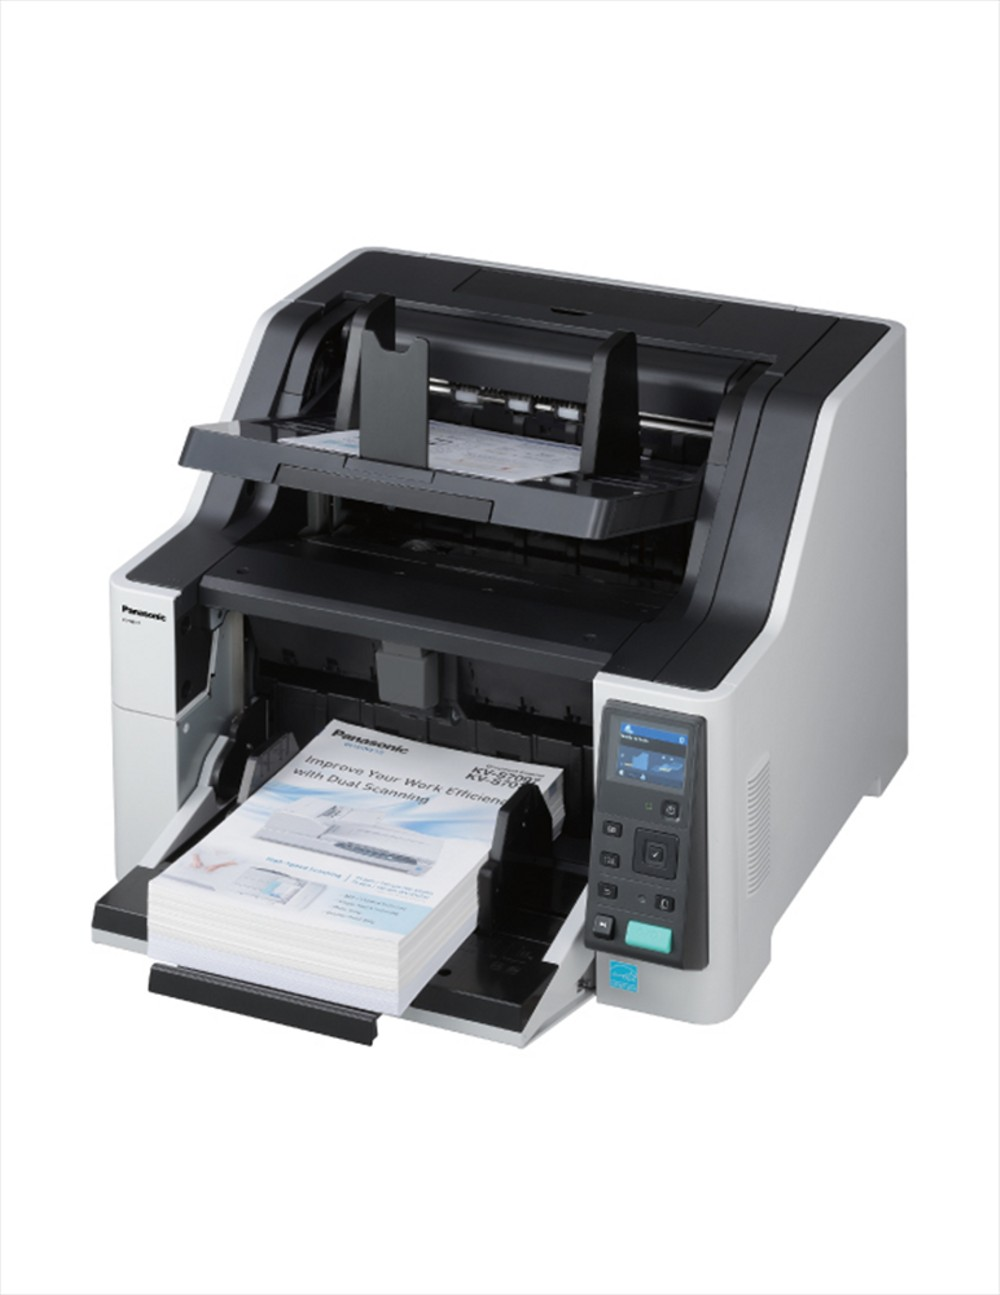 Panasonic KV-S8147 Scanner